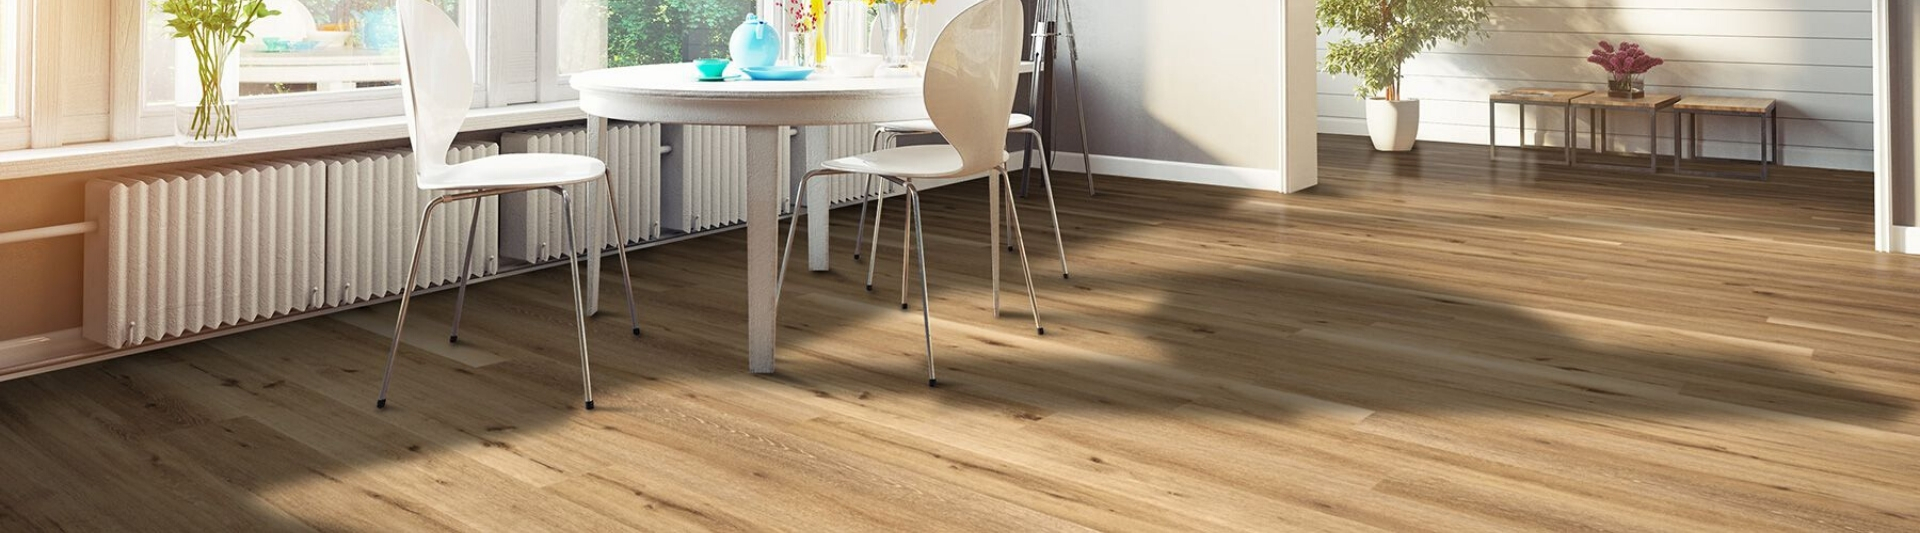 Luxury Vinyl Tile (LVT) Flooring in house with table and chairs